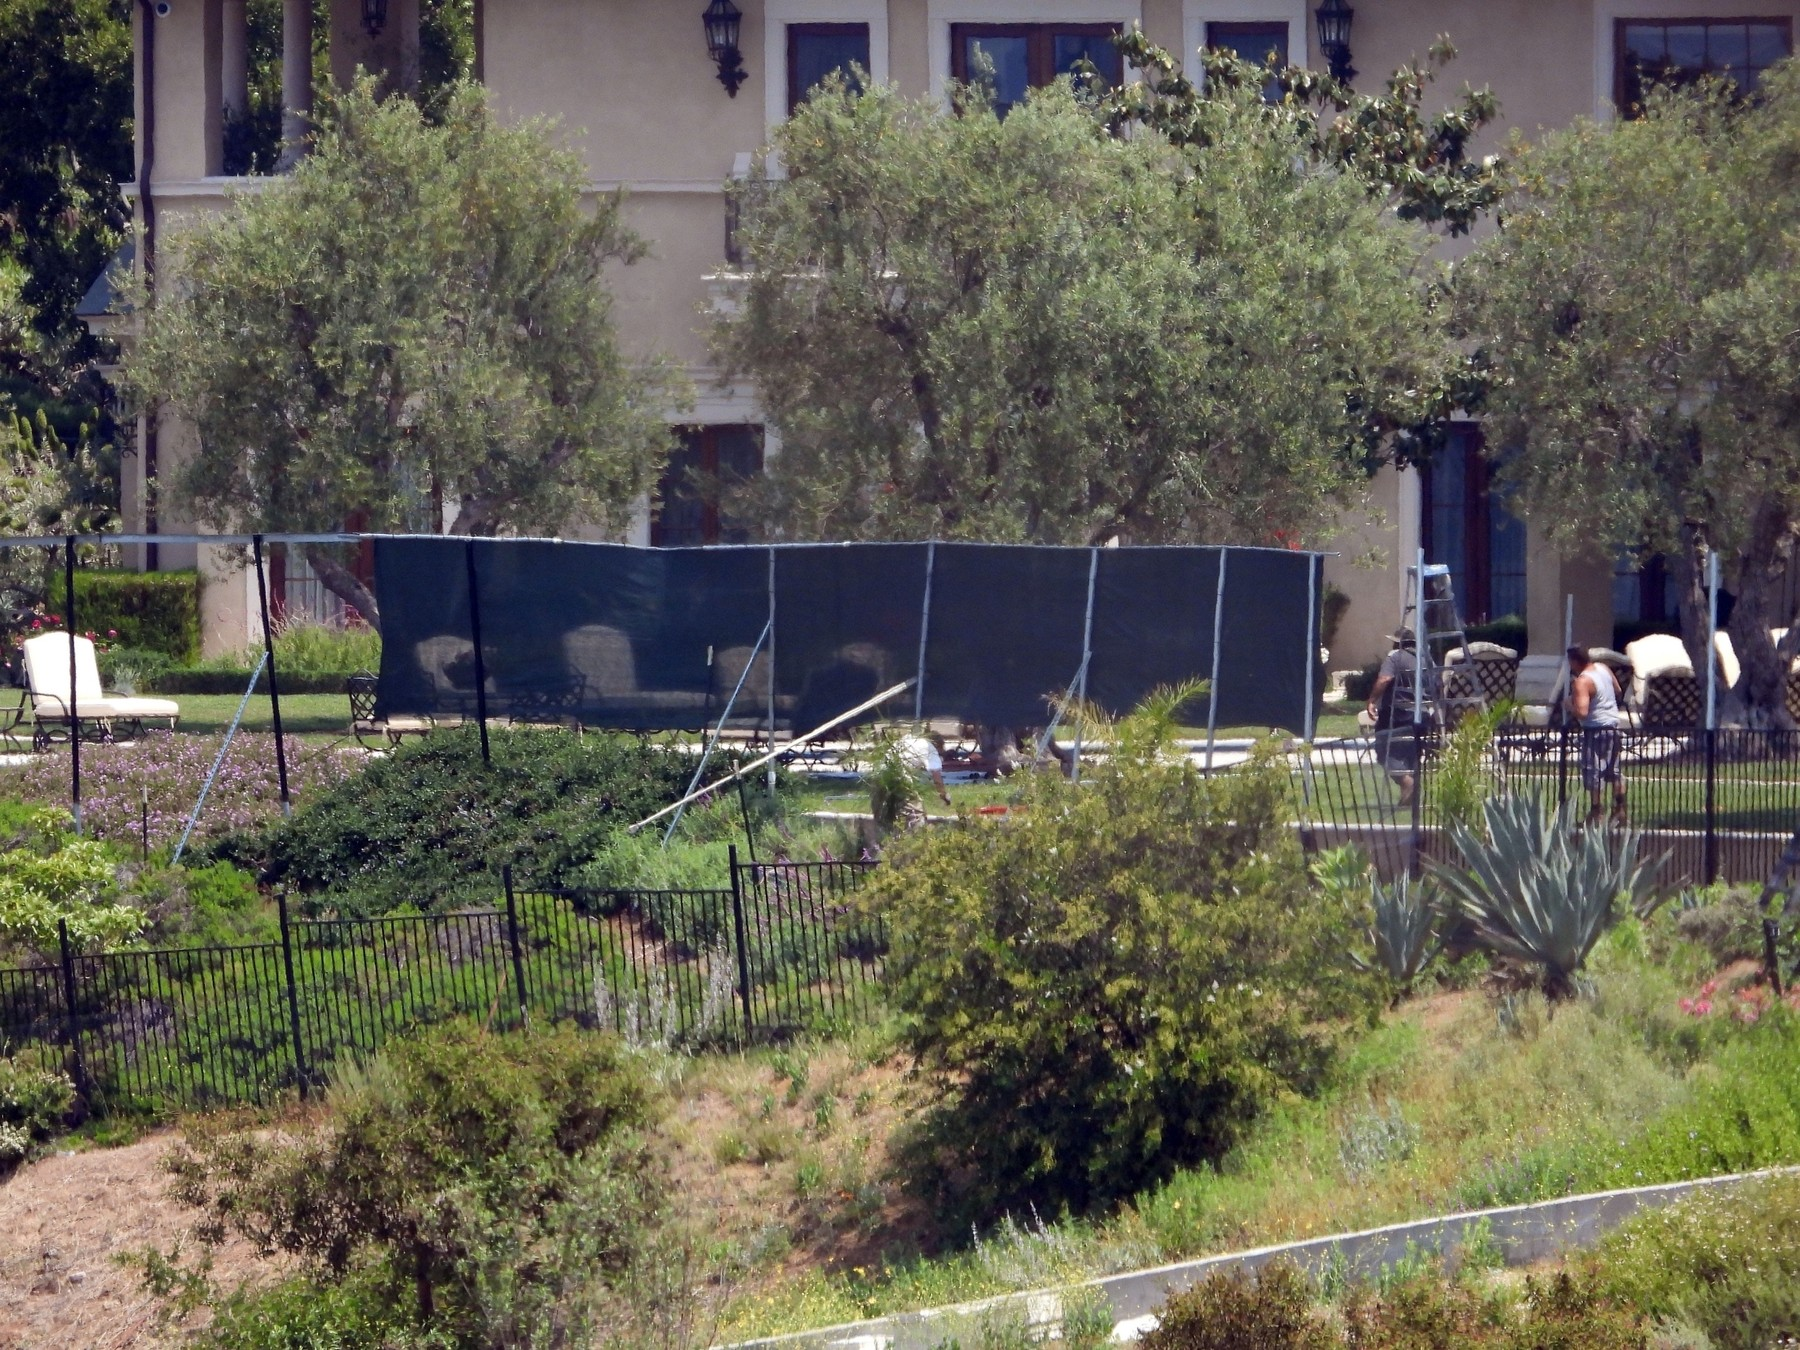 Beverly Hills, CA  - *EXCLUSIVE*  - New screens are erected by workmen at the Beverly Hills mansion owned by Tyler Perry, now reportedly the American home of Prince Harry, his wife Meghan Markle and their baby son, Archie. These photos were taken from a hiking trail close to the  million property which opened to the public on Saturday, May 9, 2020. A hiking trail leads up a steep hill to the edge of the property, where a security camera is situated. There are also security cameras set up on fences dotted around the home. From the mansion, it is also possible for the Duke and Duchess of Sussex to look down at the homes of showbiz royalty Sylvester Stallone, Mark Wahlberg and Rod Stewart who all own multi-million dollar mansions in the neighboring Beverly Park estate. Sylvester Stallone's home is the one with the outdoor pool, Rod Stewart's is the French-style mansion and it is just possible to see his soccer pitch, while Mark Wahlberg's home has what appears to be a circular turret.  BACKGRID USA 11 MAY 2020, Image: 518624906, License: Rights-managed, Restrictions: , Model Release: no, Credit line: BACKGRID / Backgrid USA / Profimedia